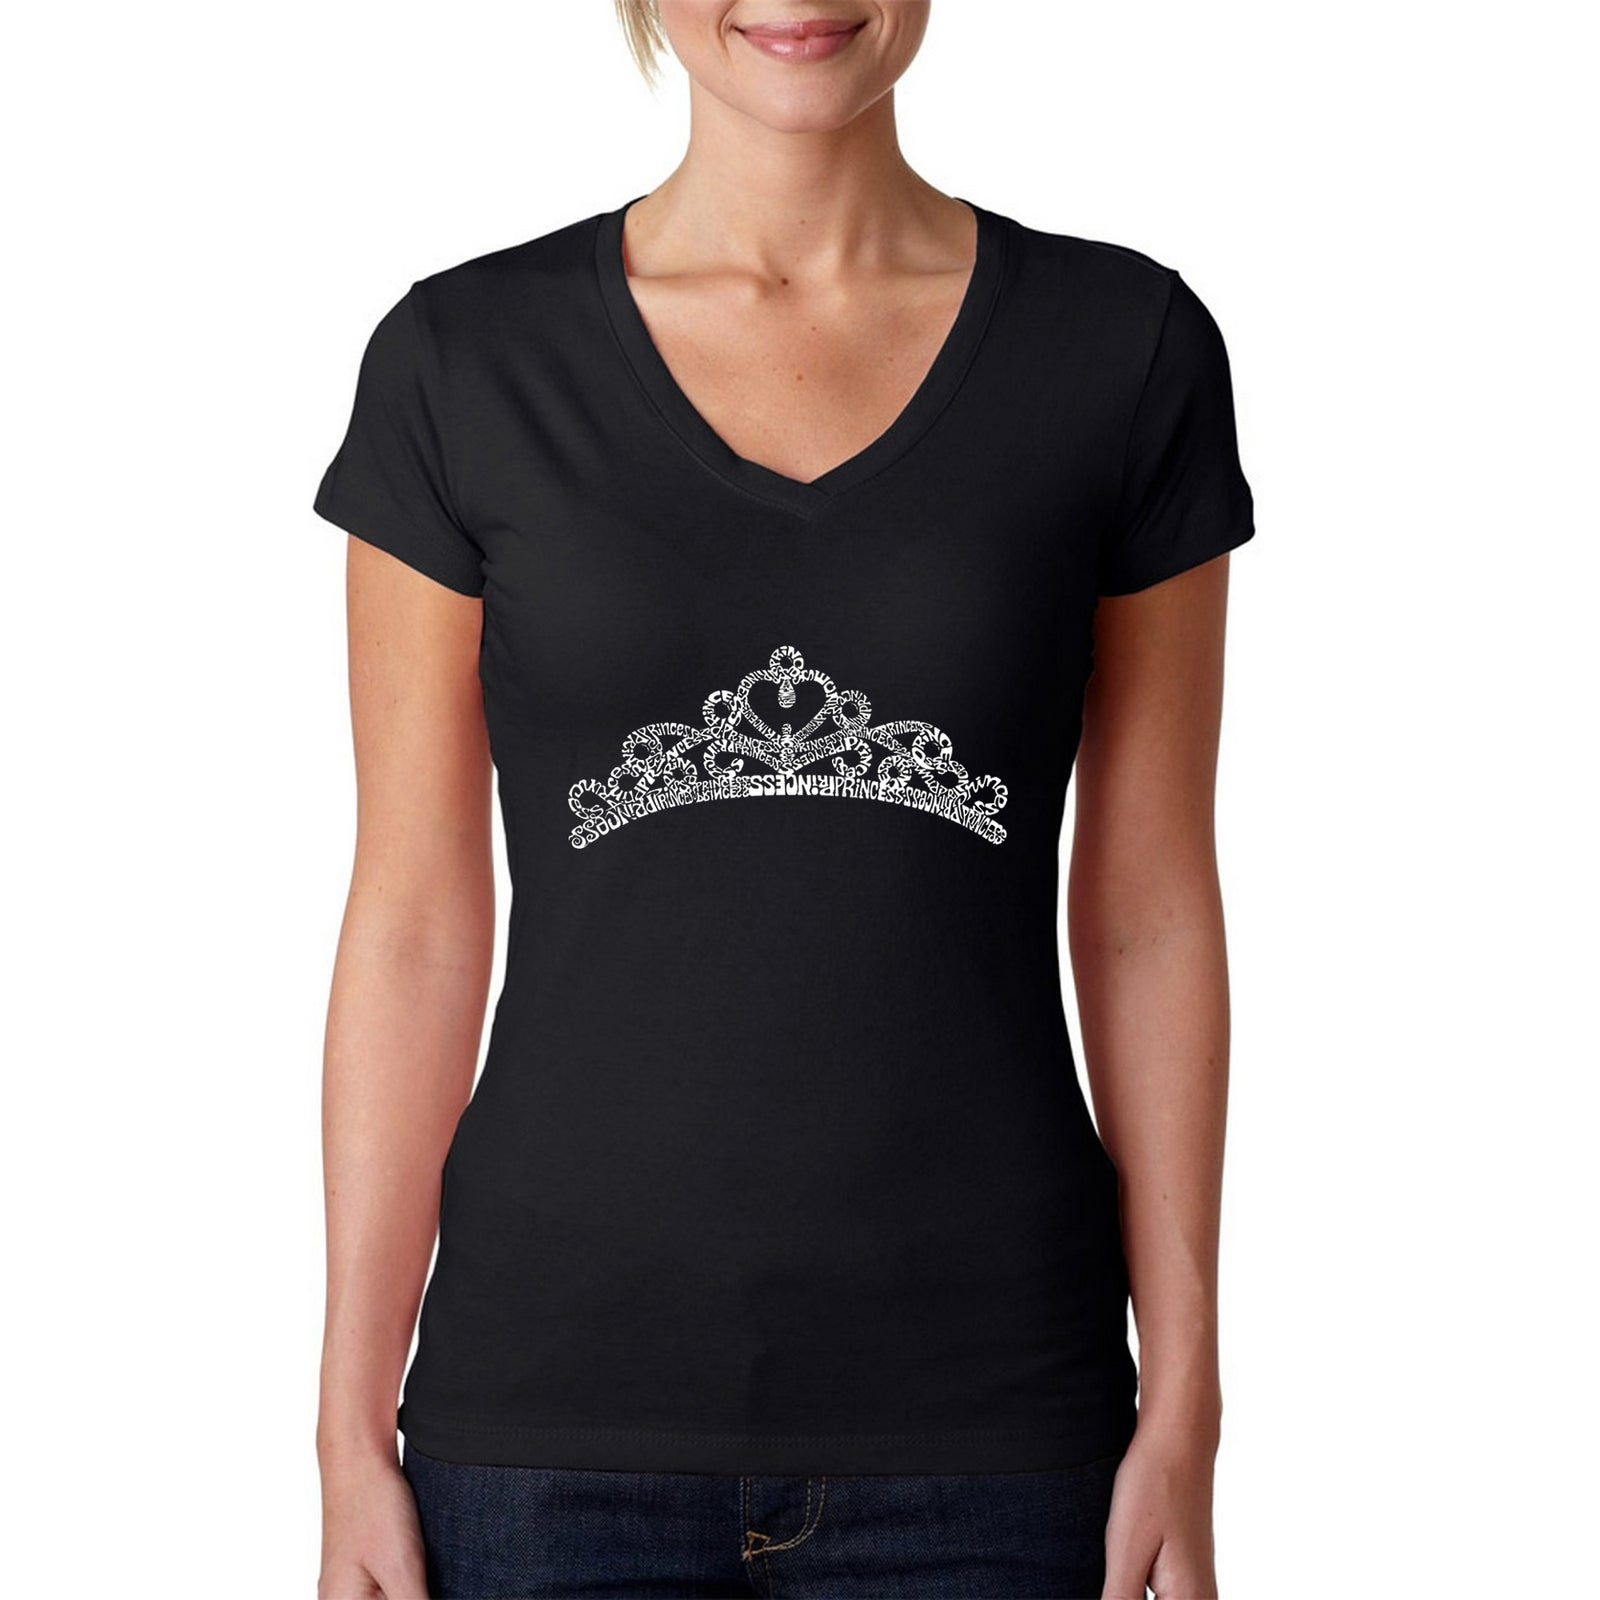 Women's V-Neck T-Shirt - Princess Tiara